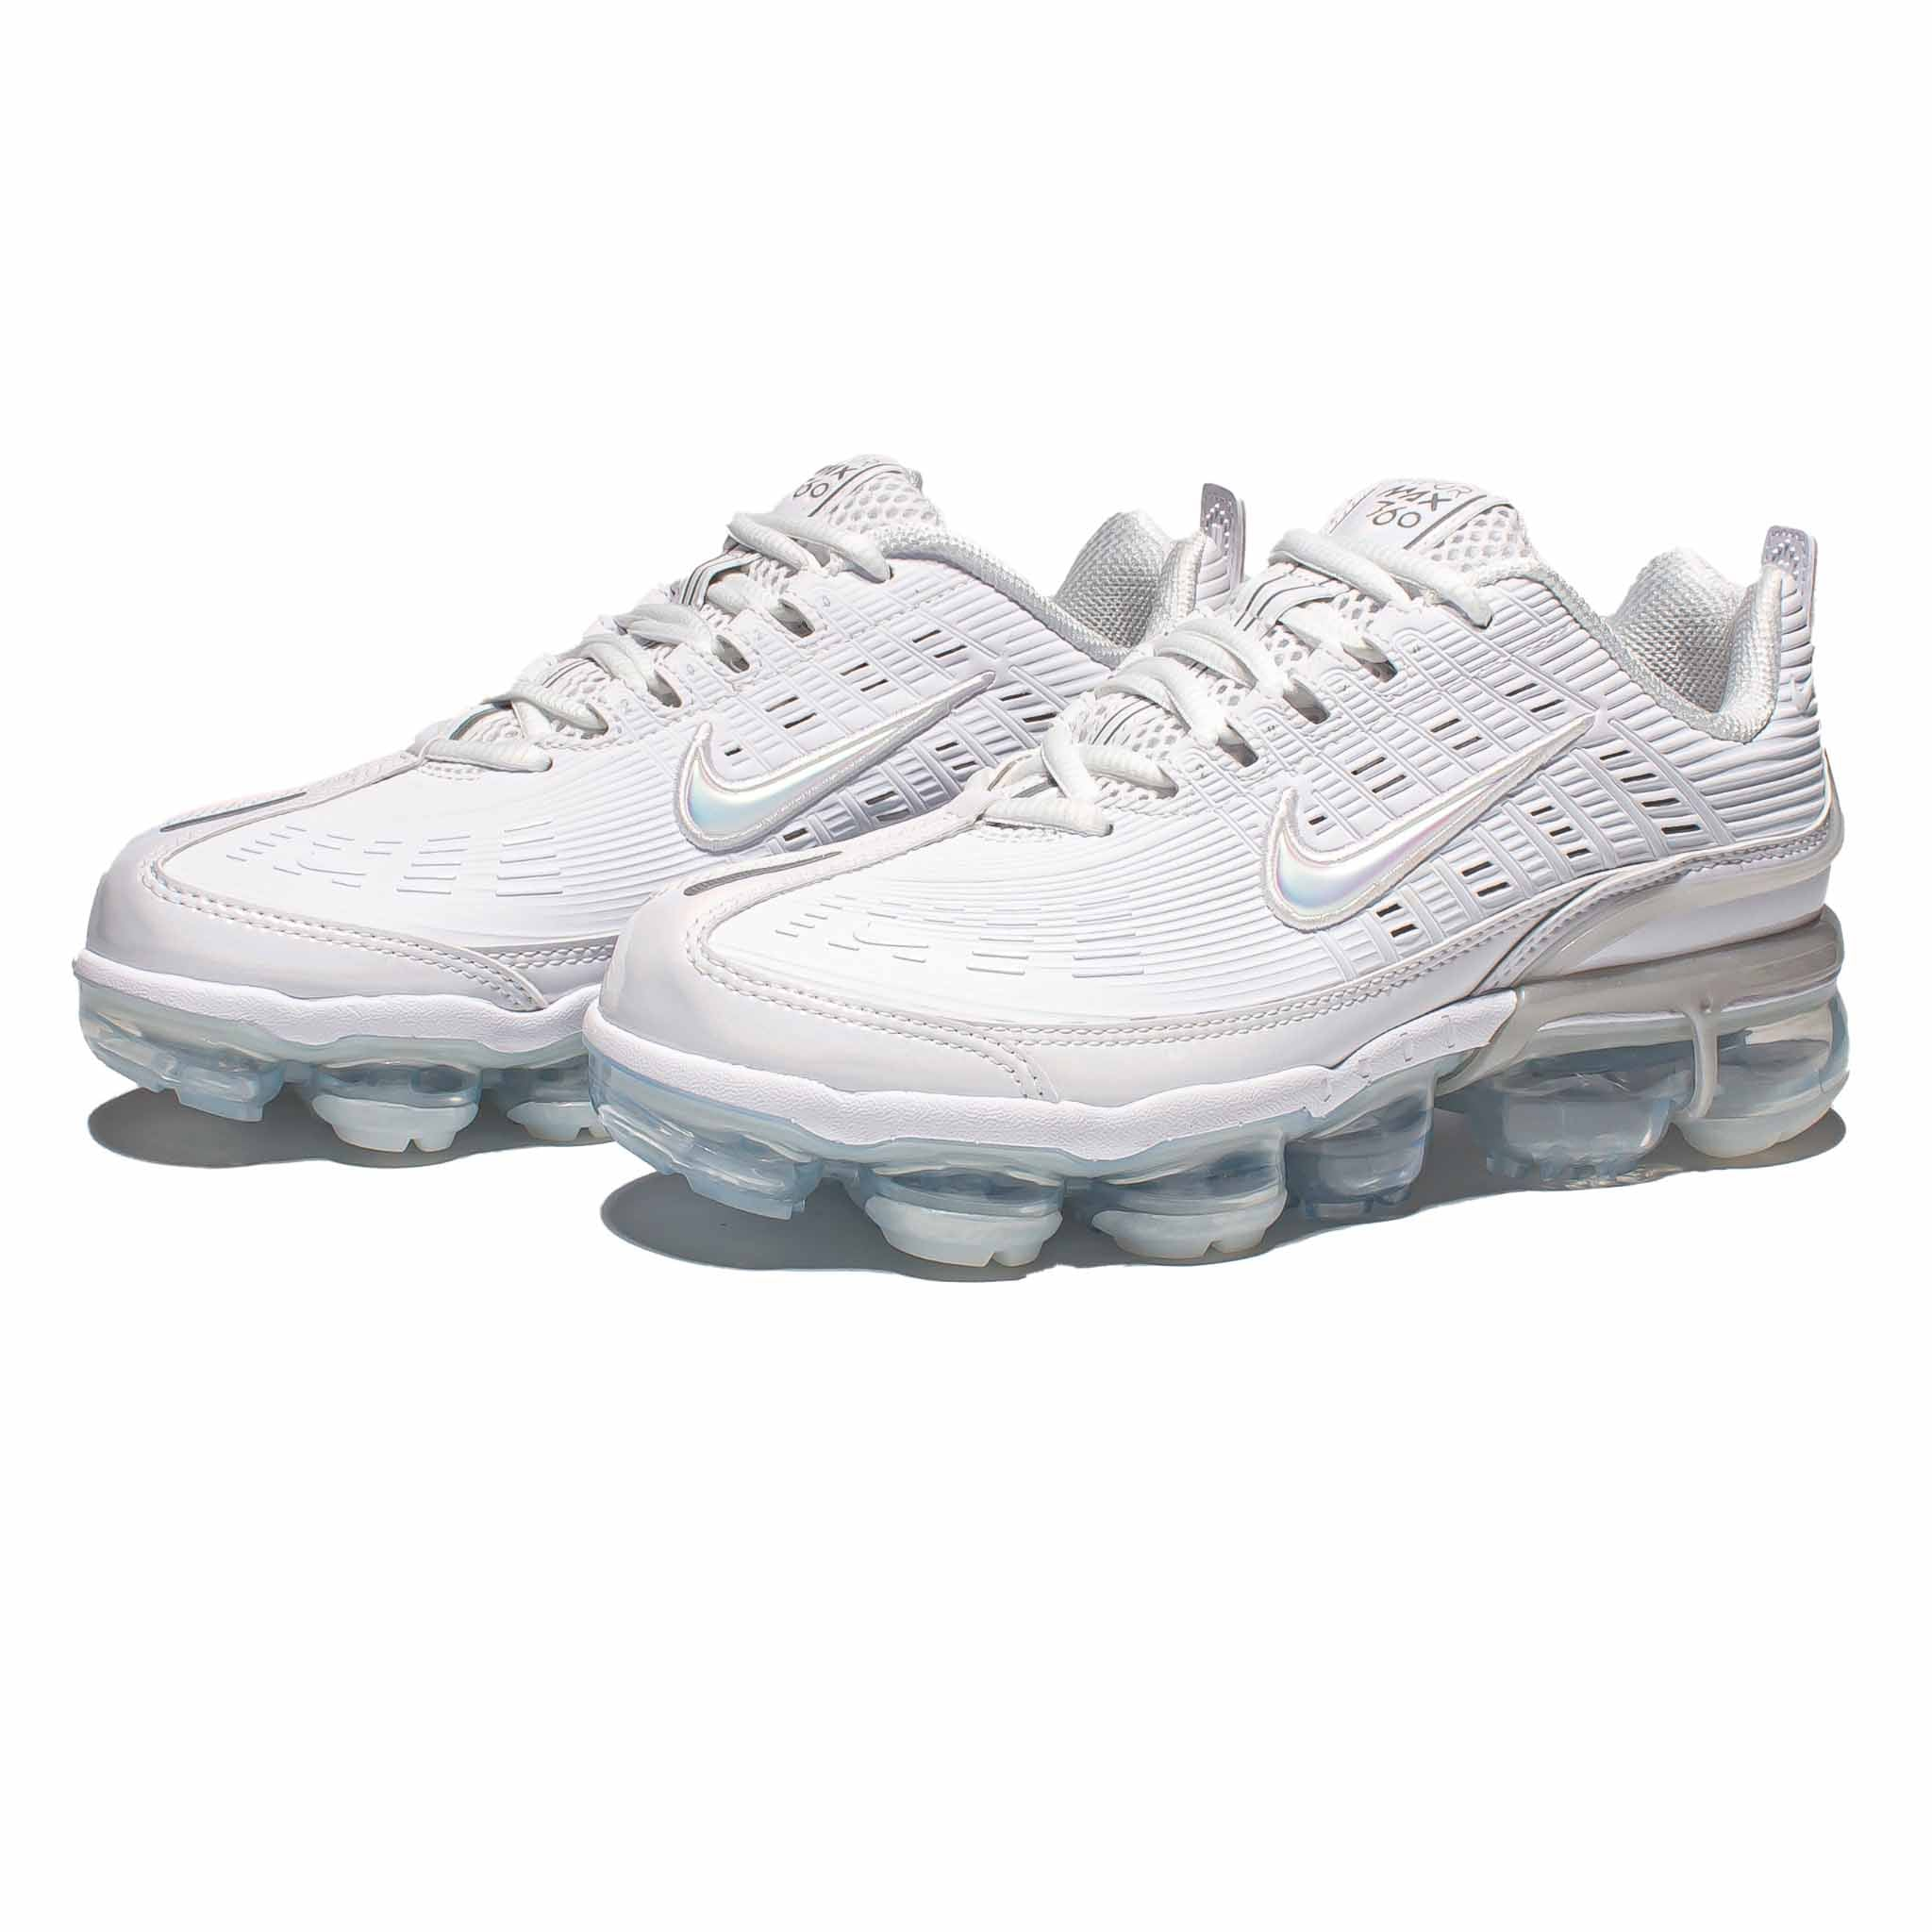 Nike Air Vapormax 360 'Triple White'